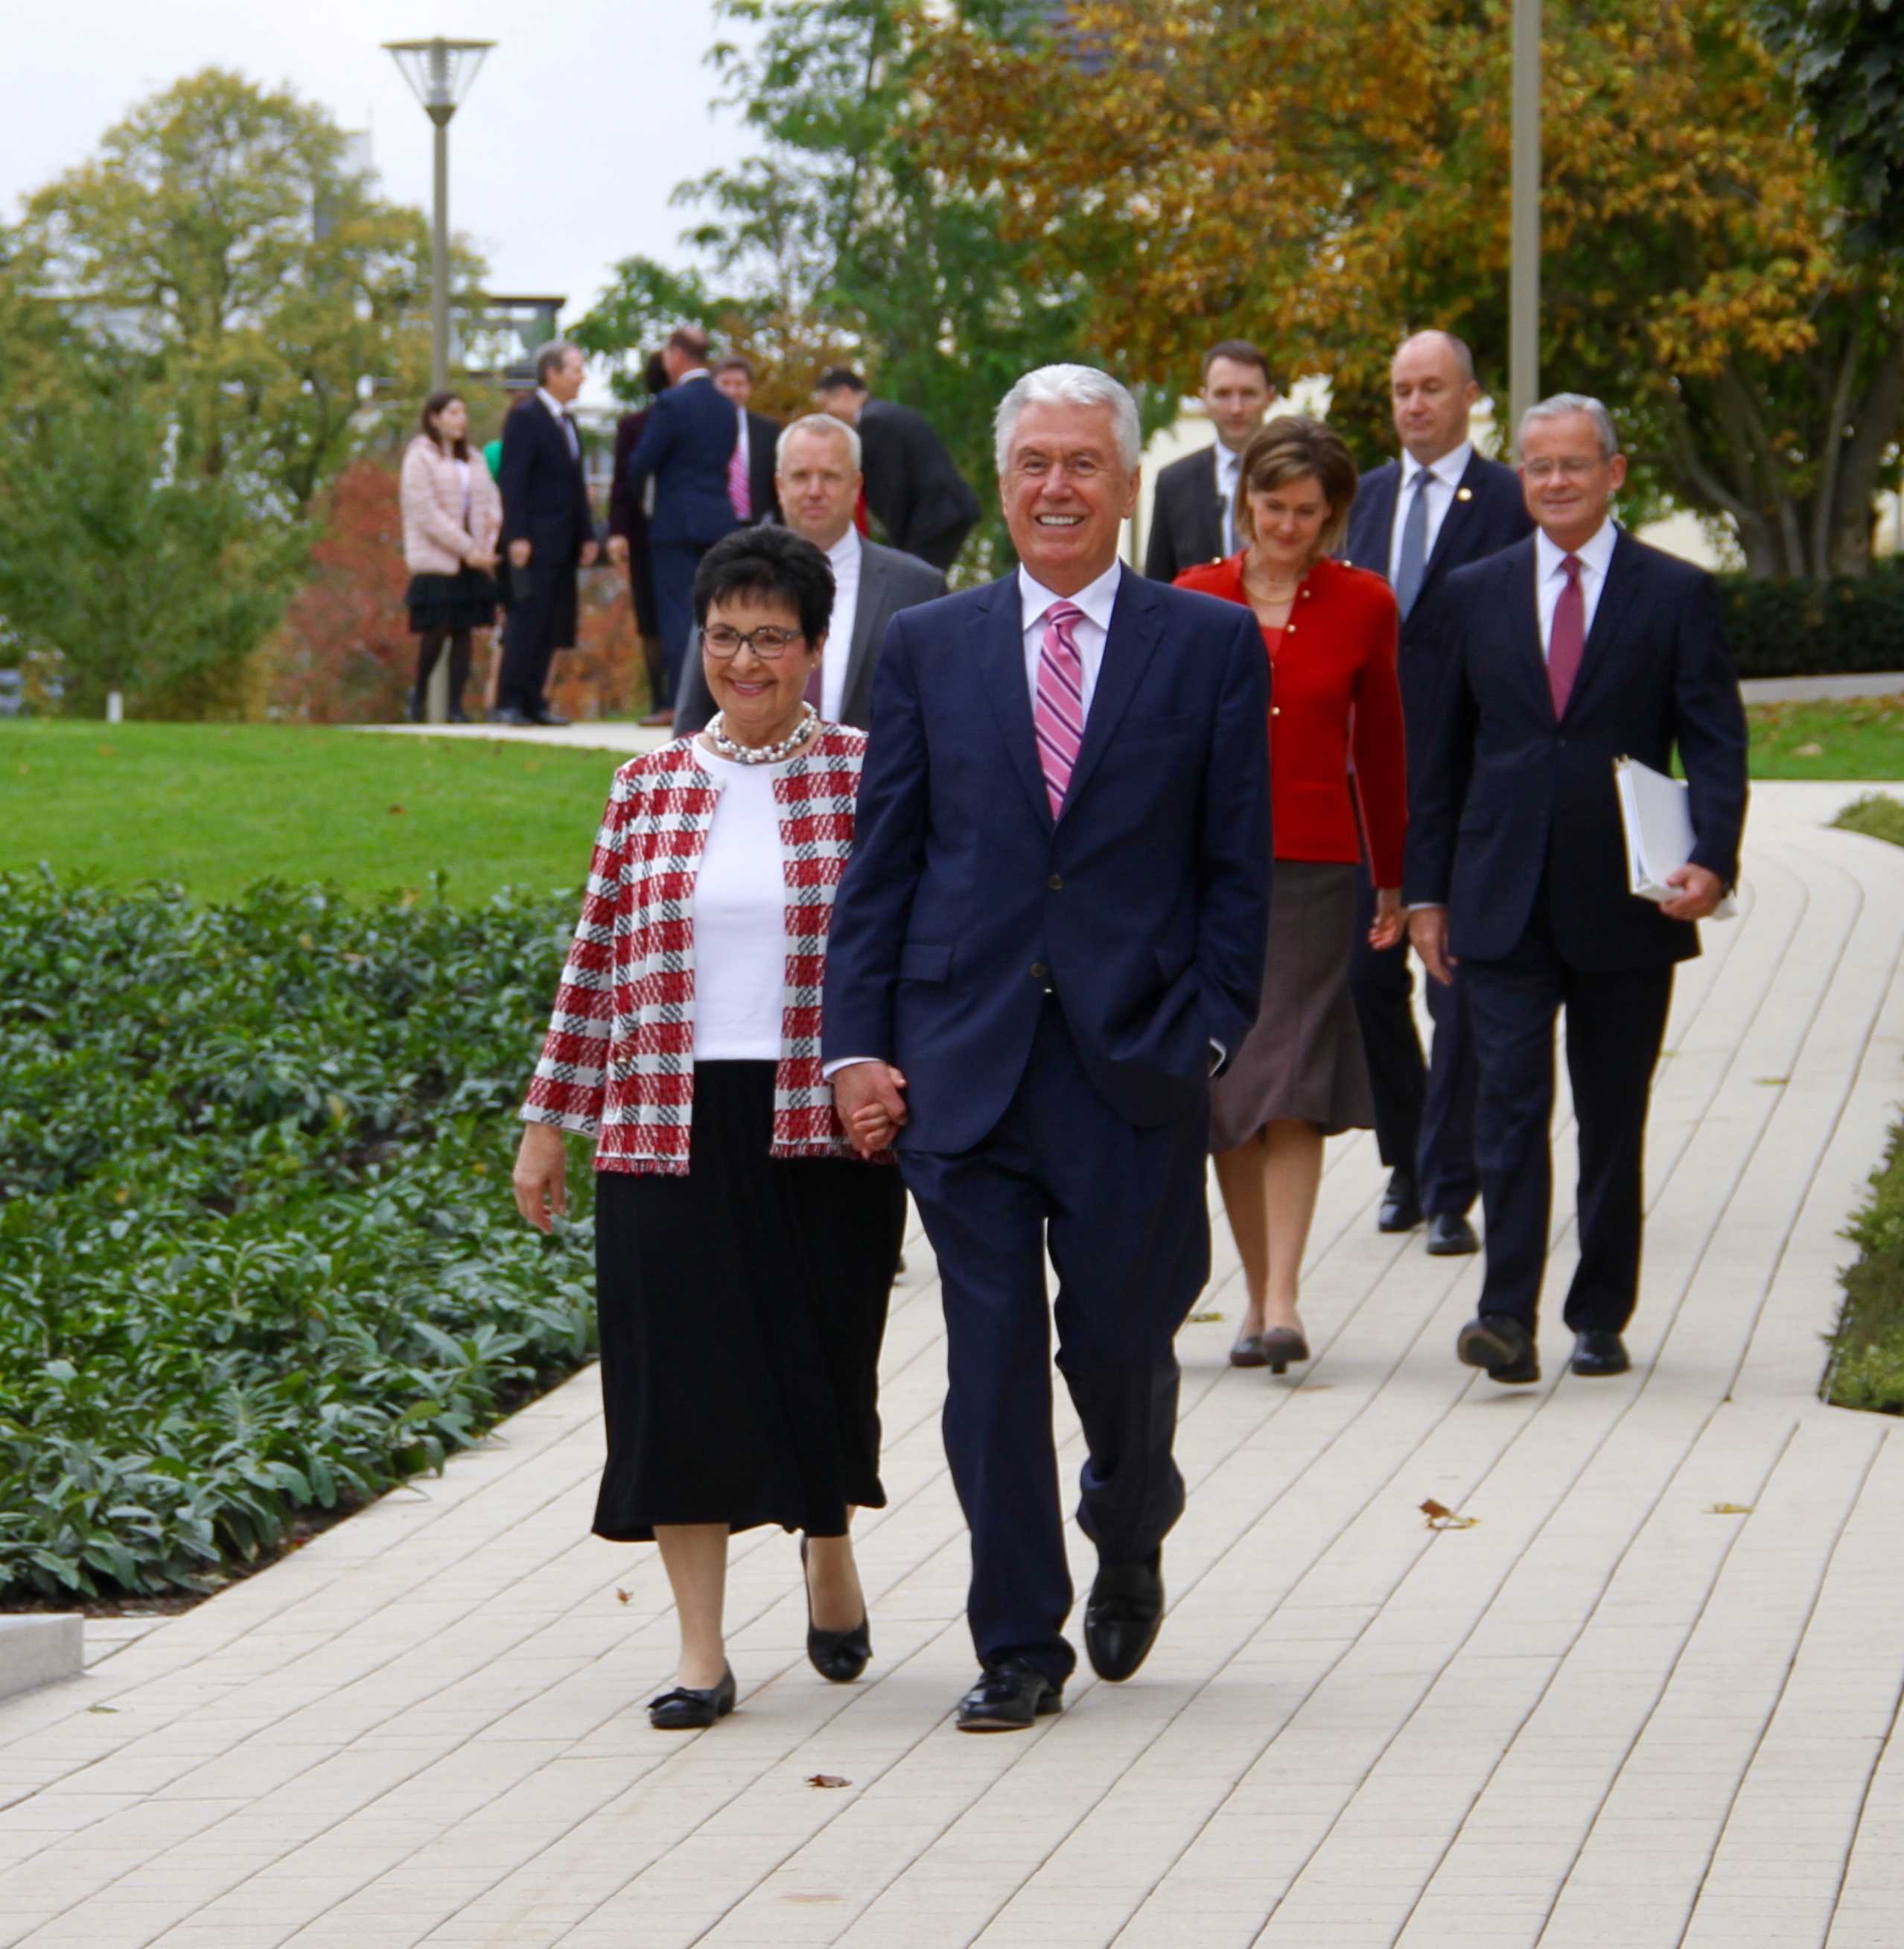 Elder Dieter F. Uchtdorf and Sister Harriet Uchtdorf lead an arriving group of Church leaders and spouses at the Frankfurt Germany Temple on Saturday, Oct. 19, 2019.